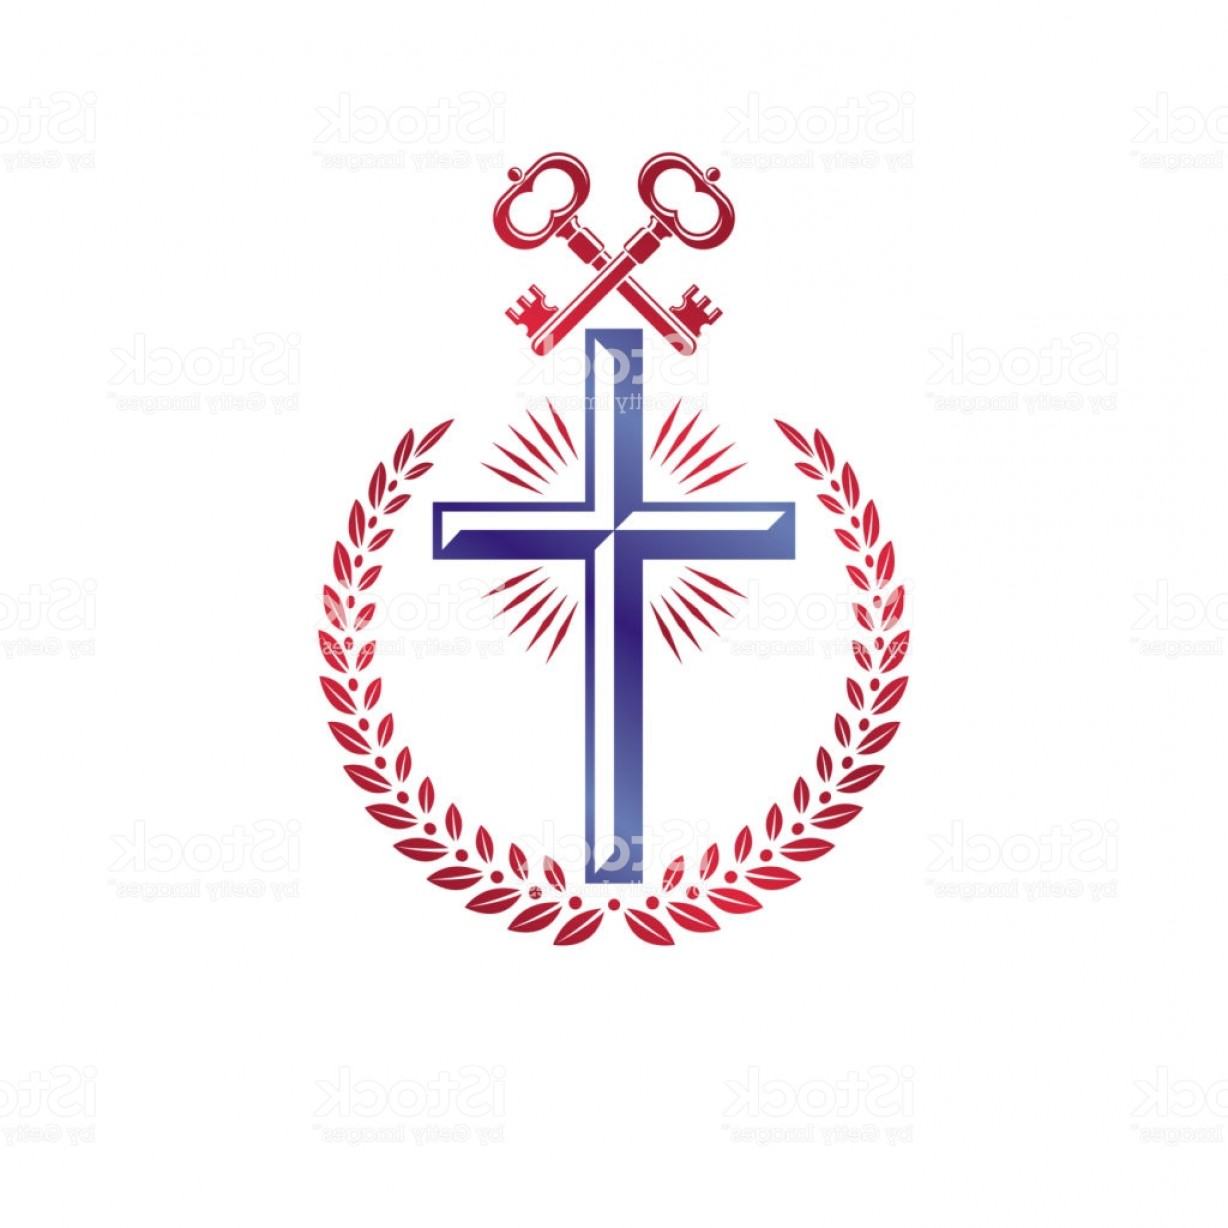 Faith Lions Vector Art Images: Christian Cross Decorative Emblem Composed With Security Keys Heraldic Vector Gm